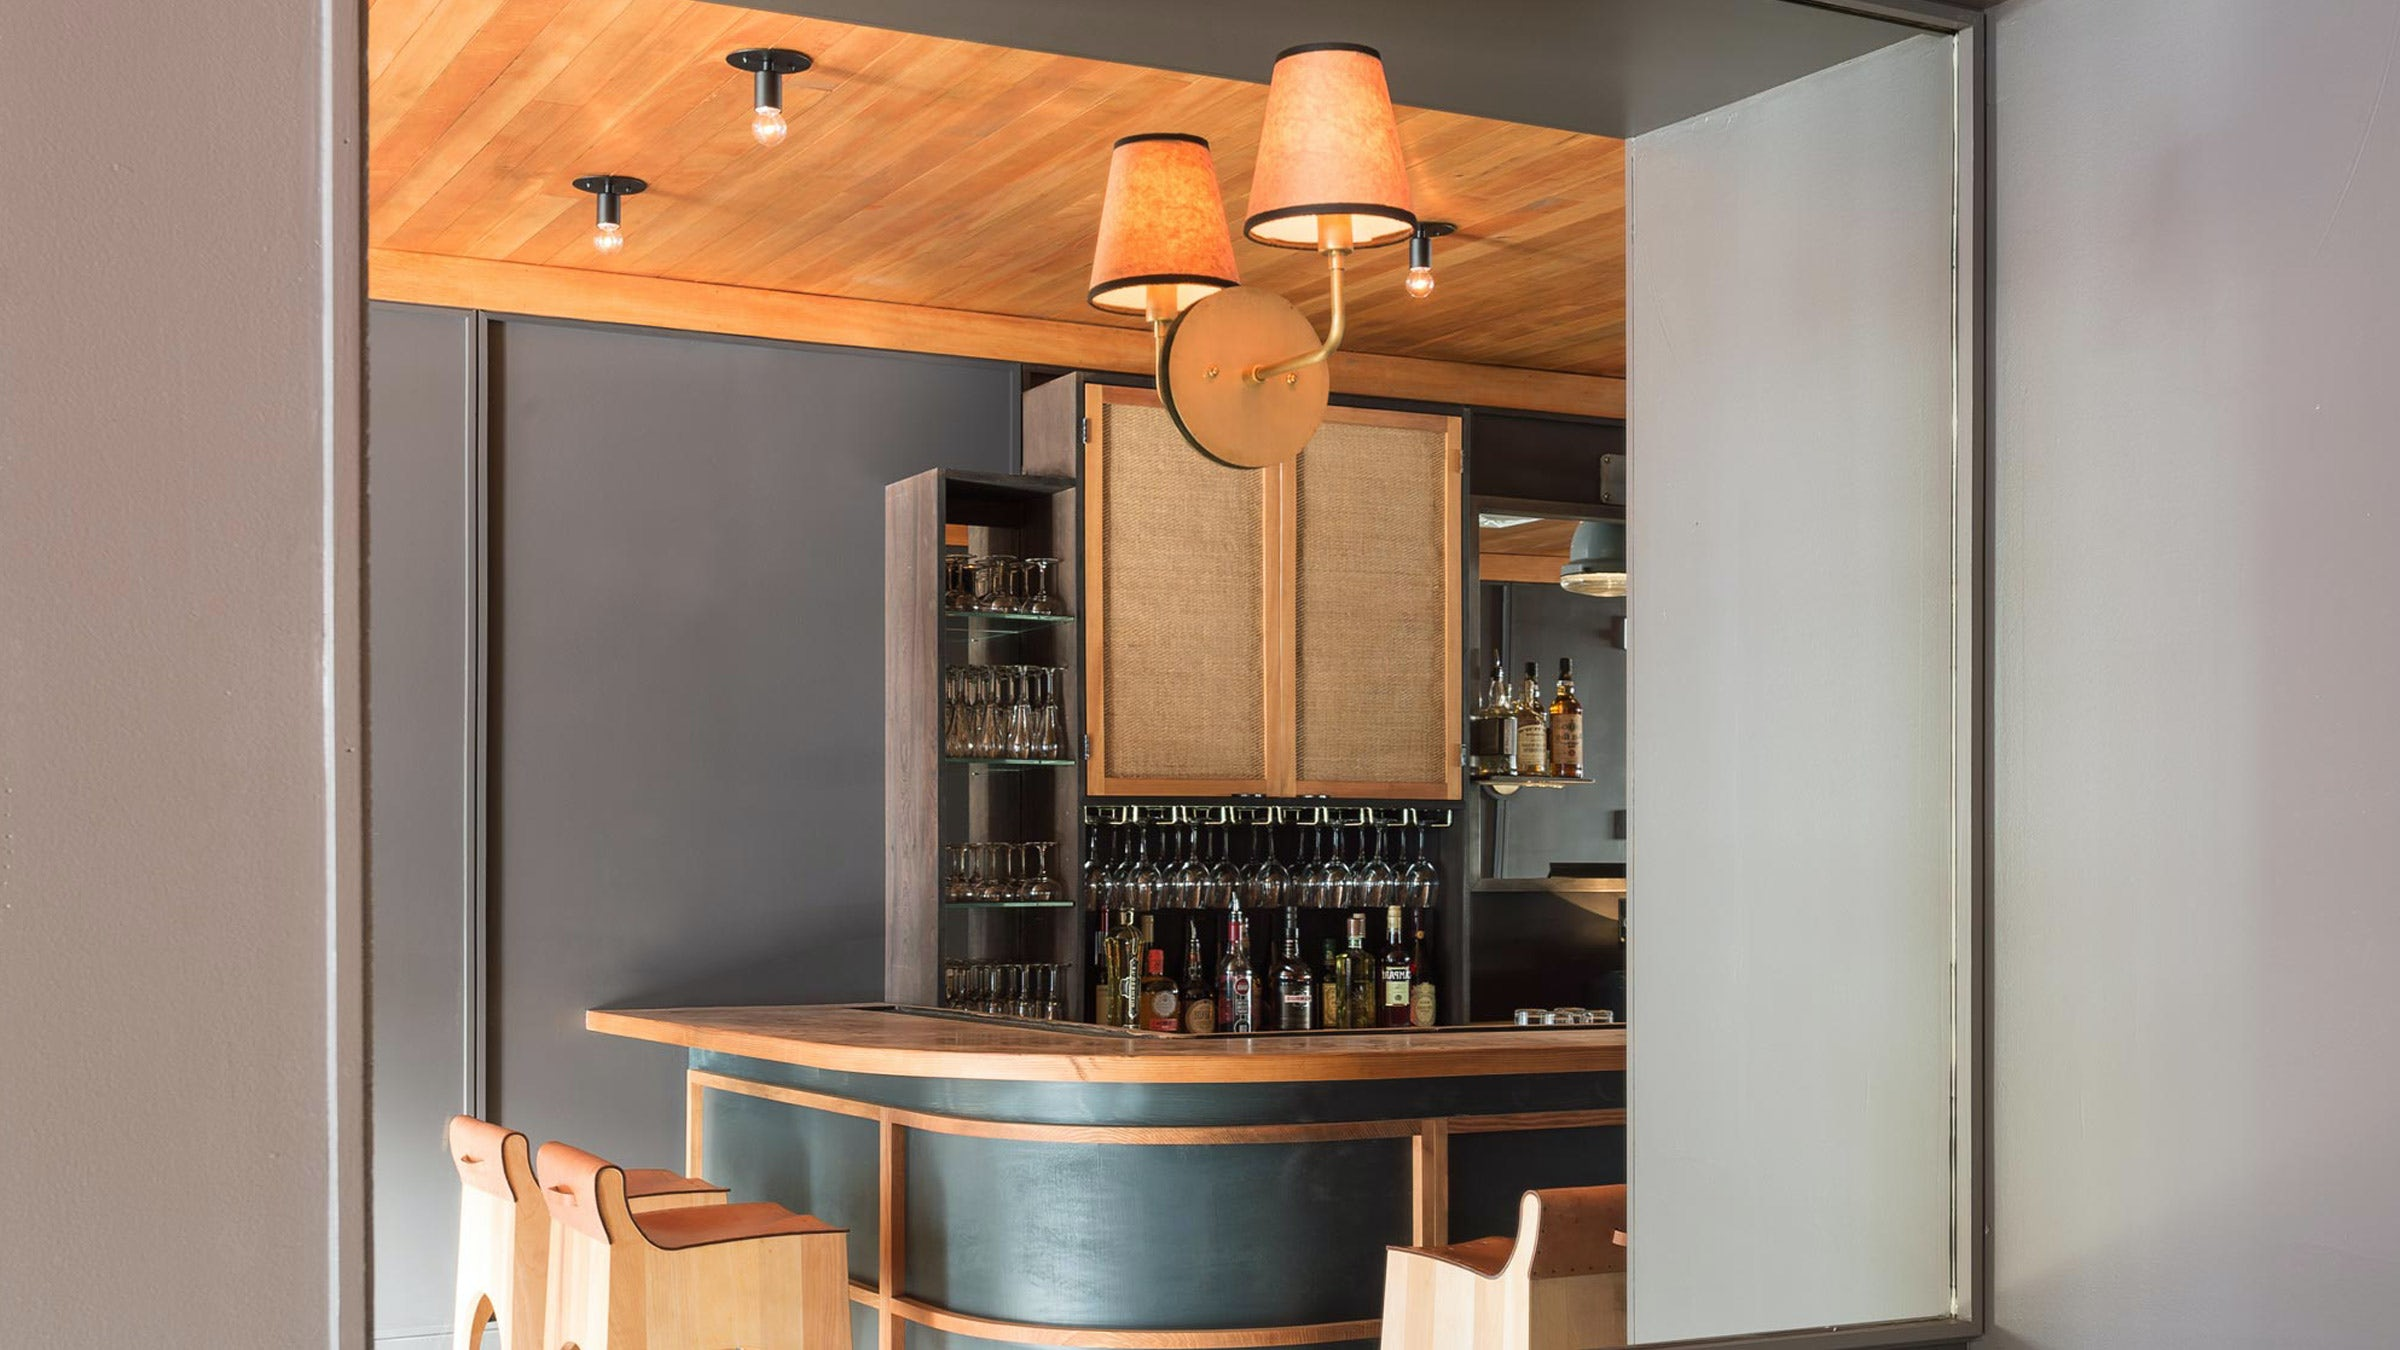 gallery image for Rivertown Tavern